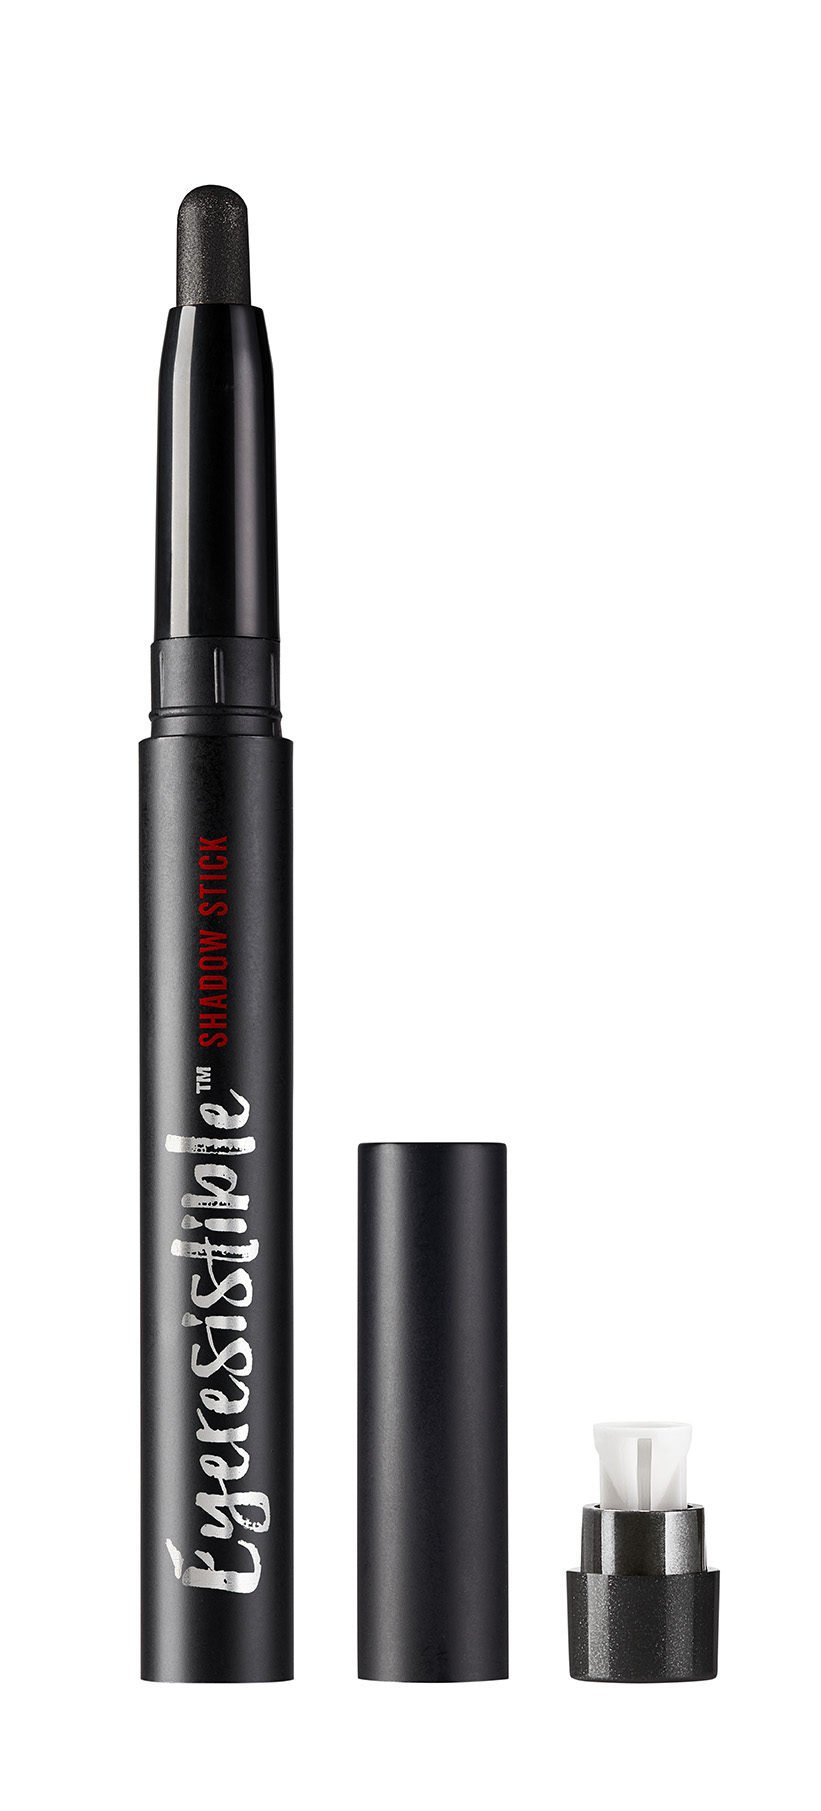 Bilde av Eyeresistible Shadow Stick Gun Metal